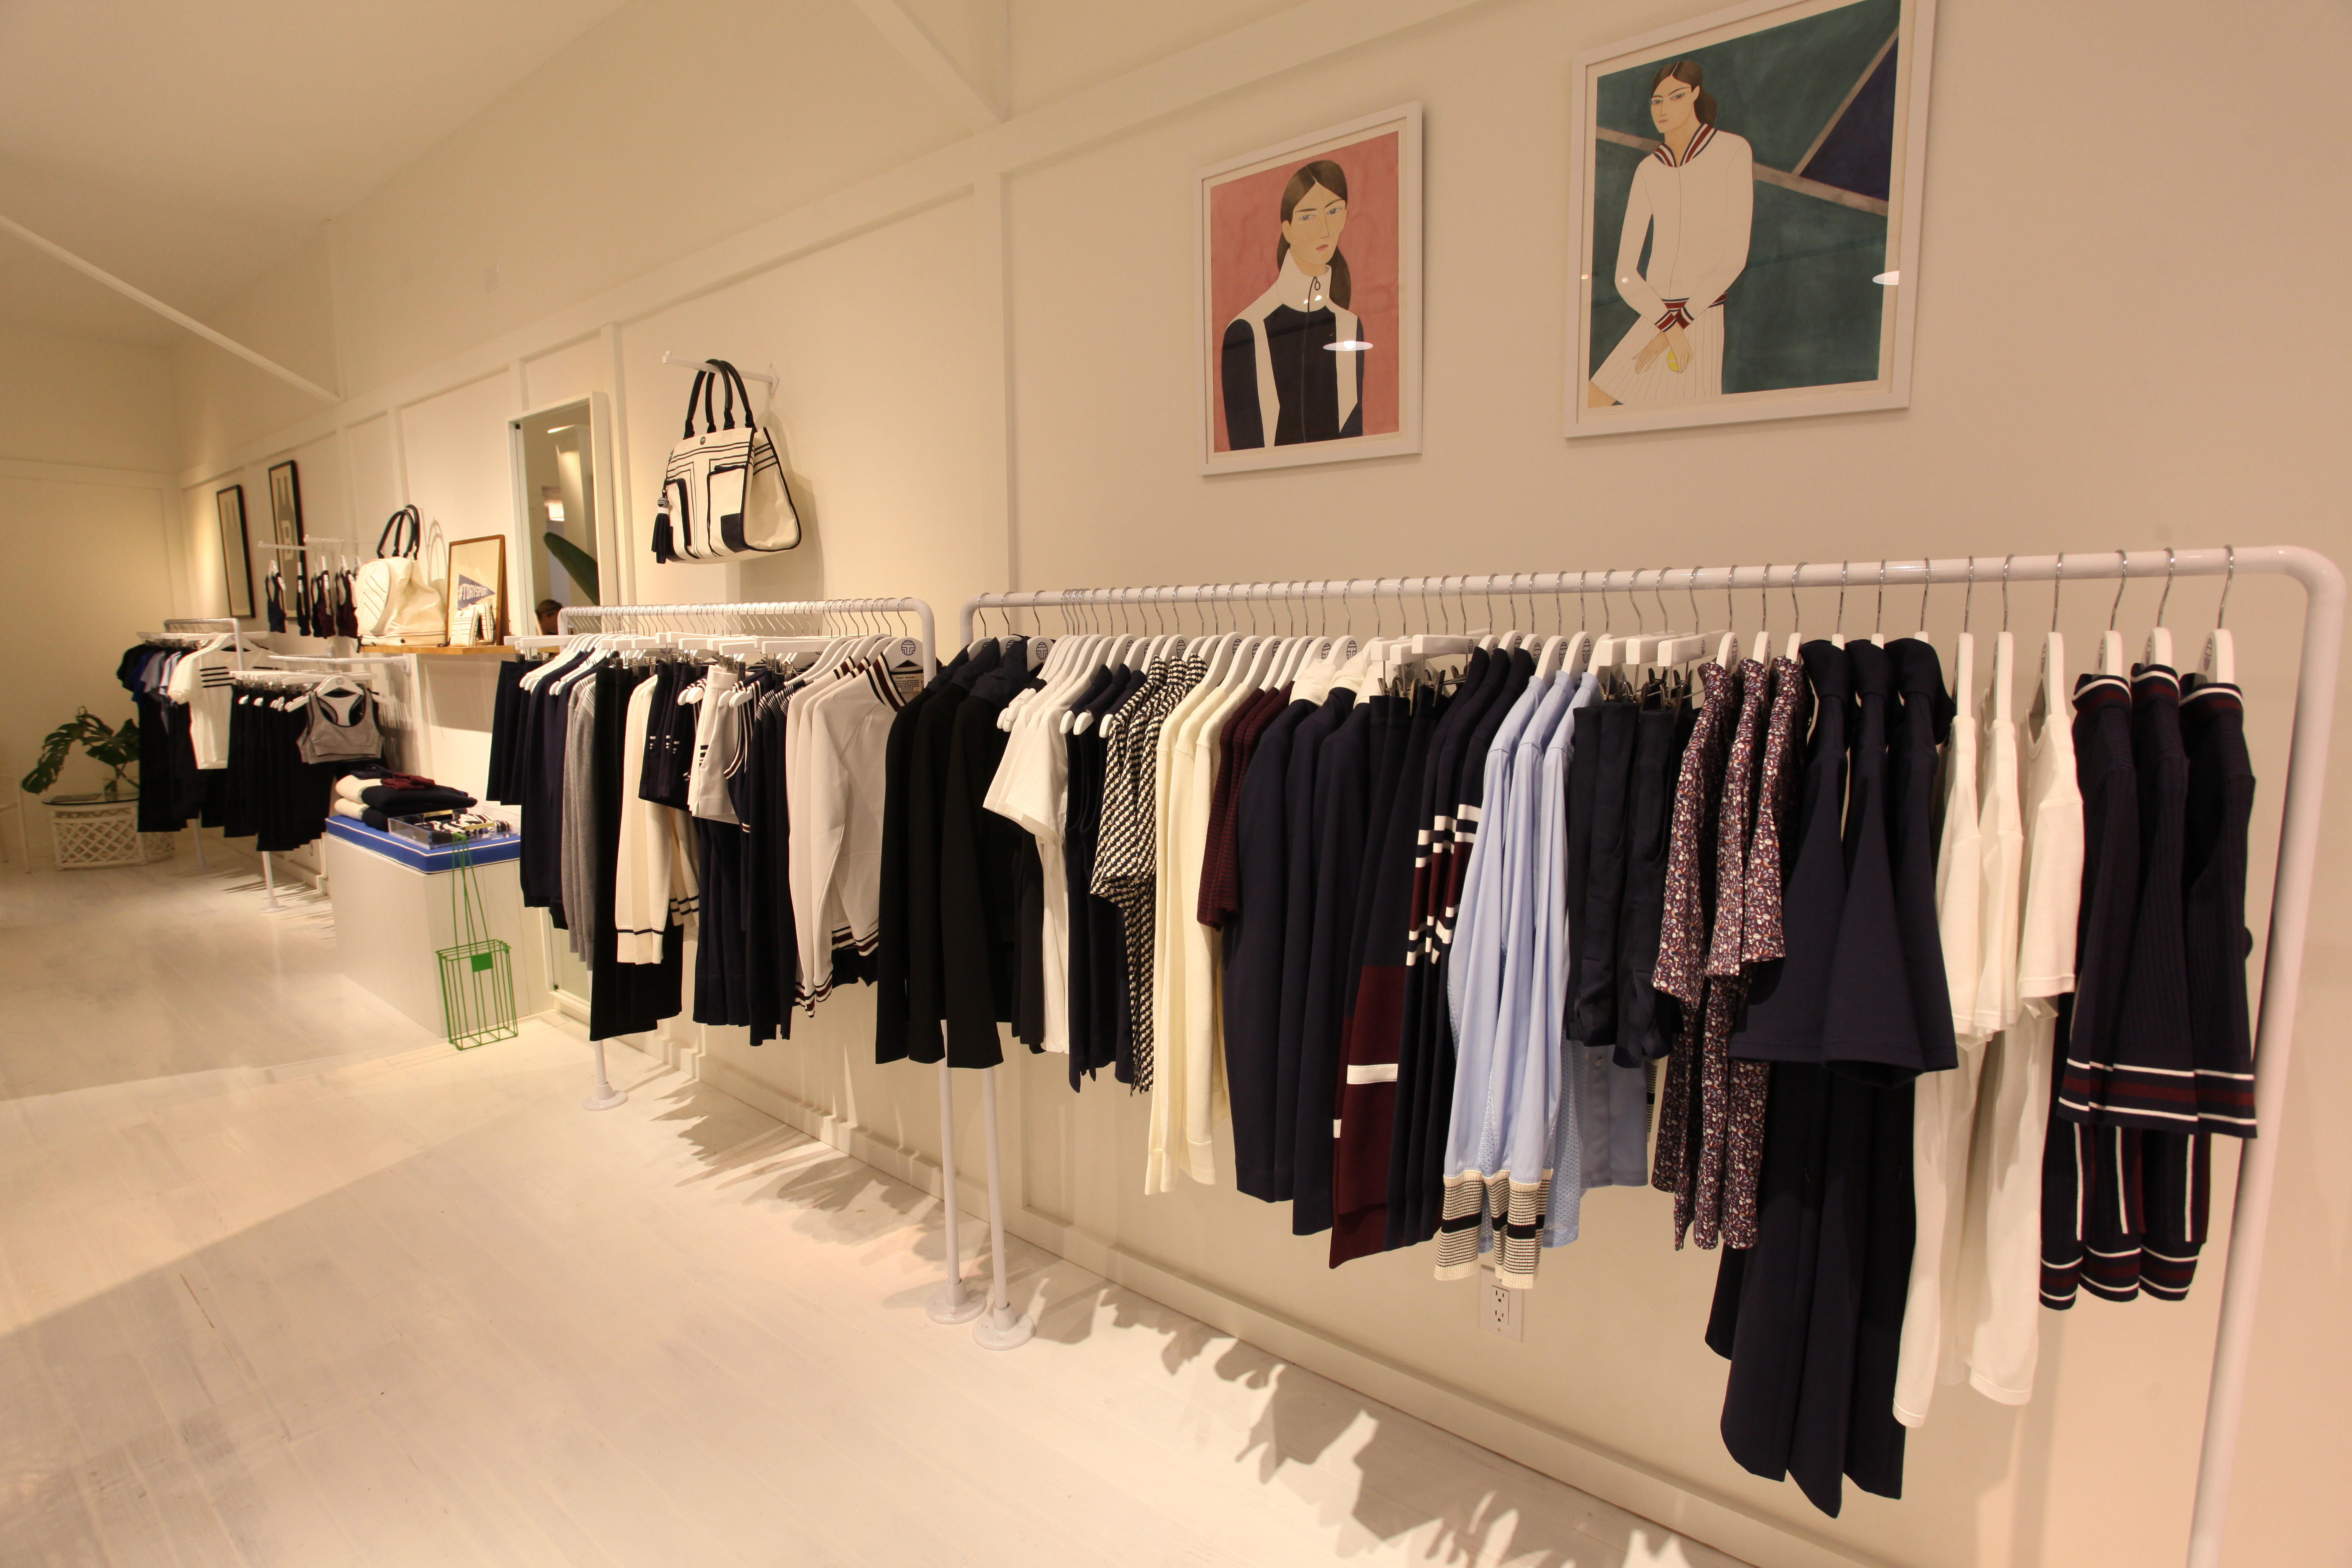 The Tory Sport pop-up shop at 257 Elizabeth Street in New York.